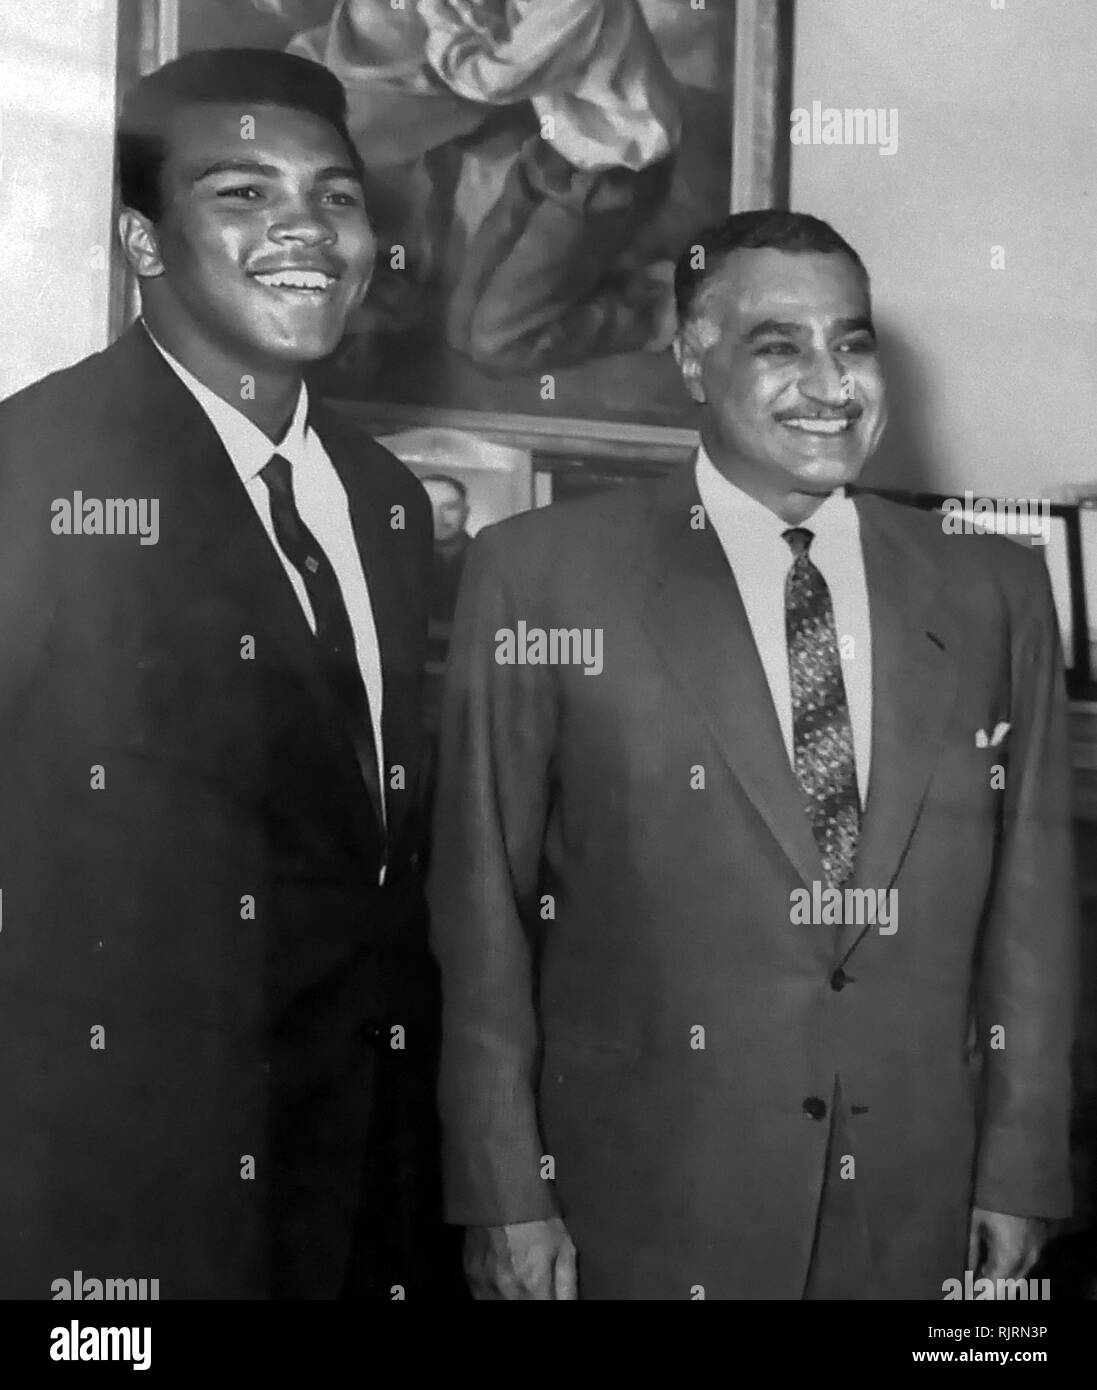 Muhammad Ali meets President Gamal Abdul Nasser of Egypt, 1964. Muhammad Ali,(1942 - 2016). Ali was an American professional boxer and activist; He is widely regarded as one of the most significant and celebrated sports figures of the 20th century. - Stock Image